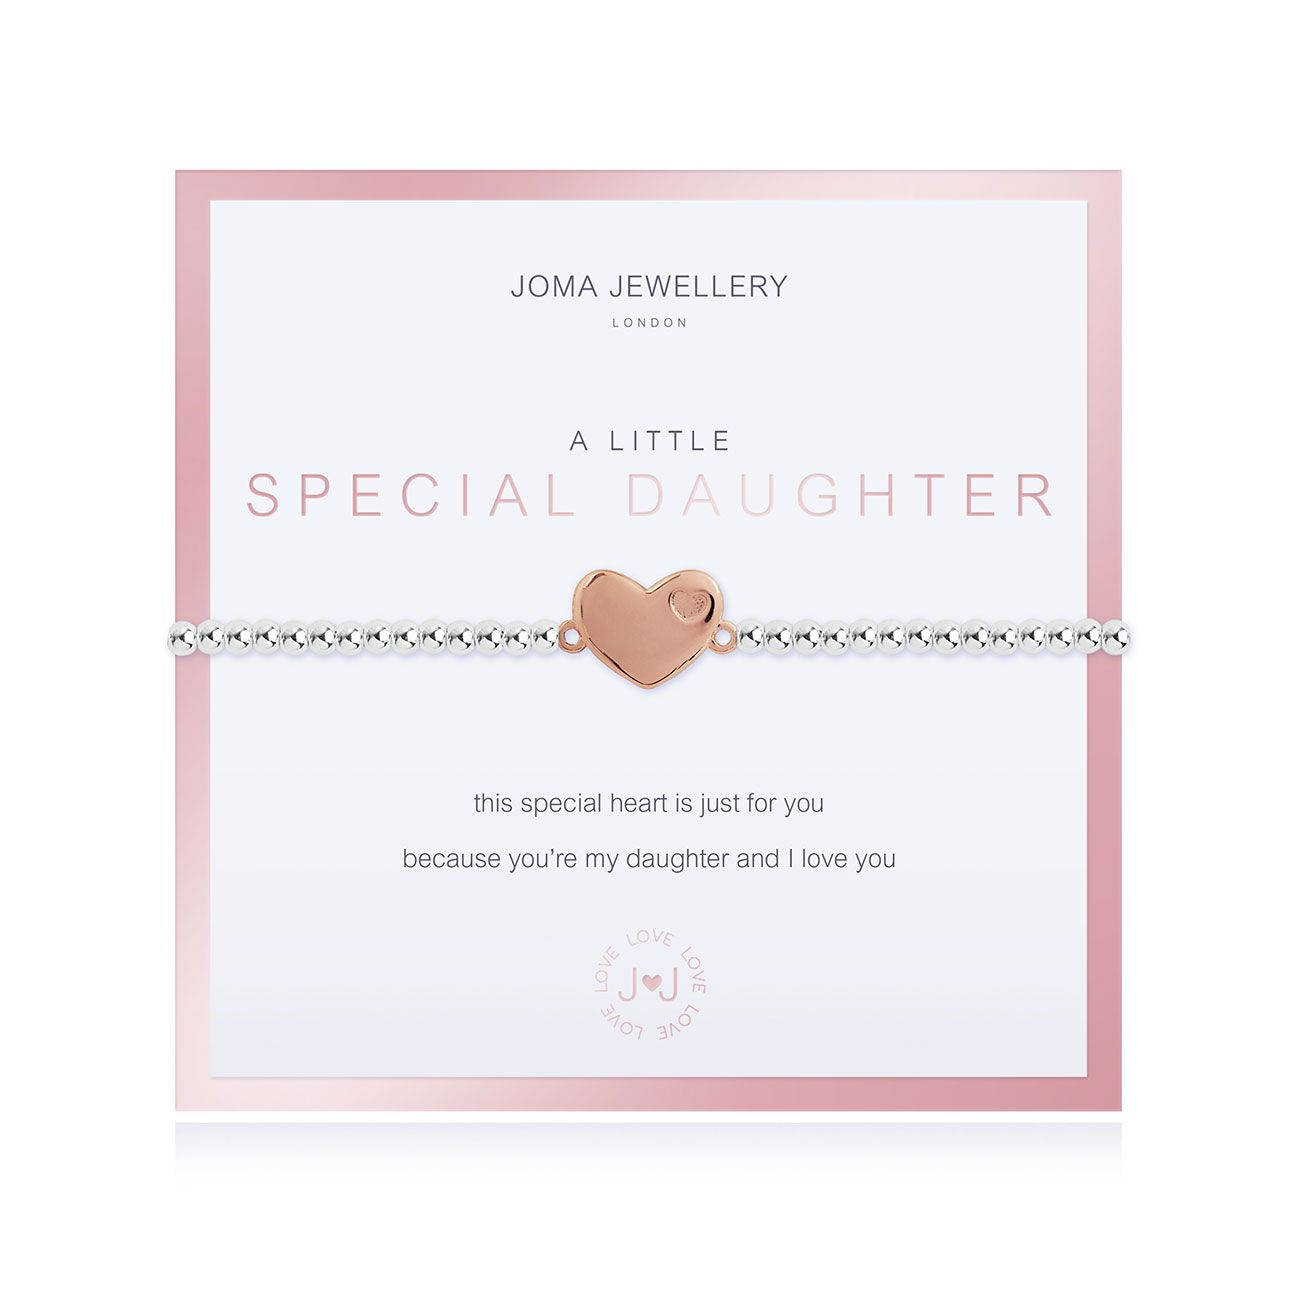 Joma a little Special Daughter Boxed Bracelet - heart